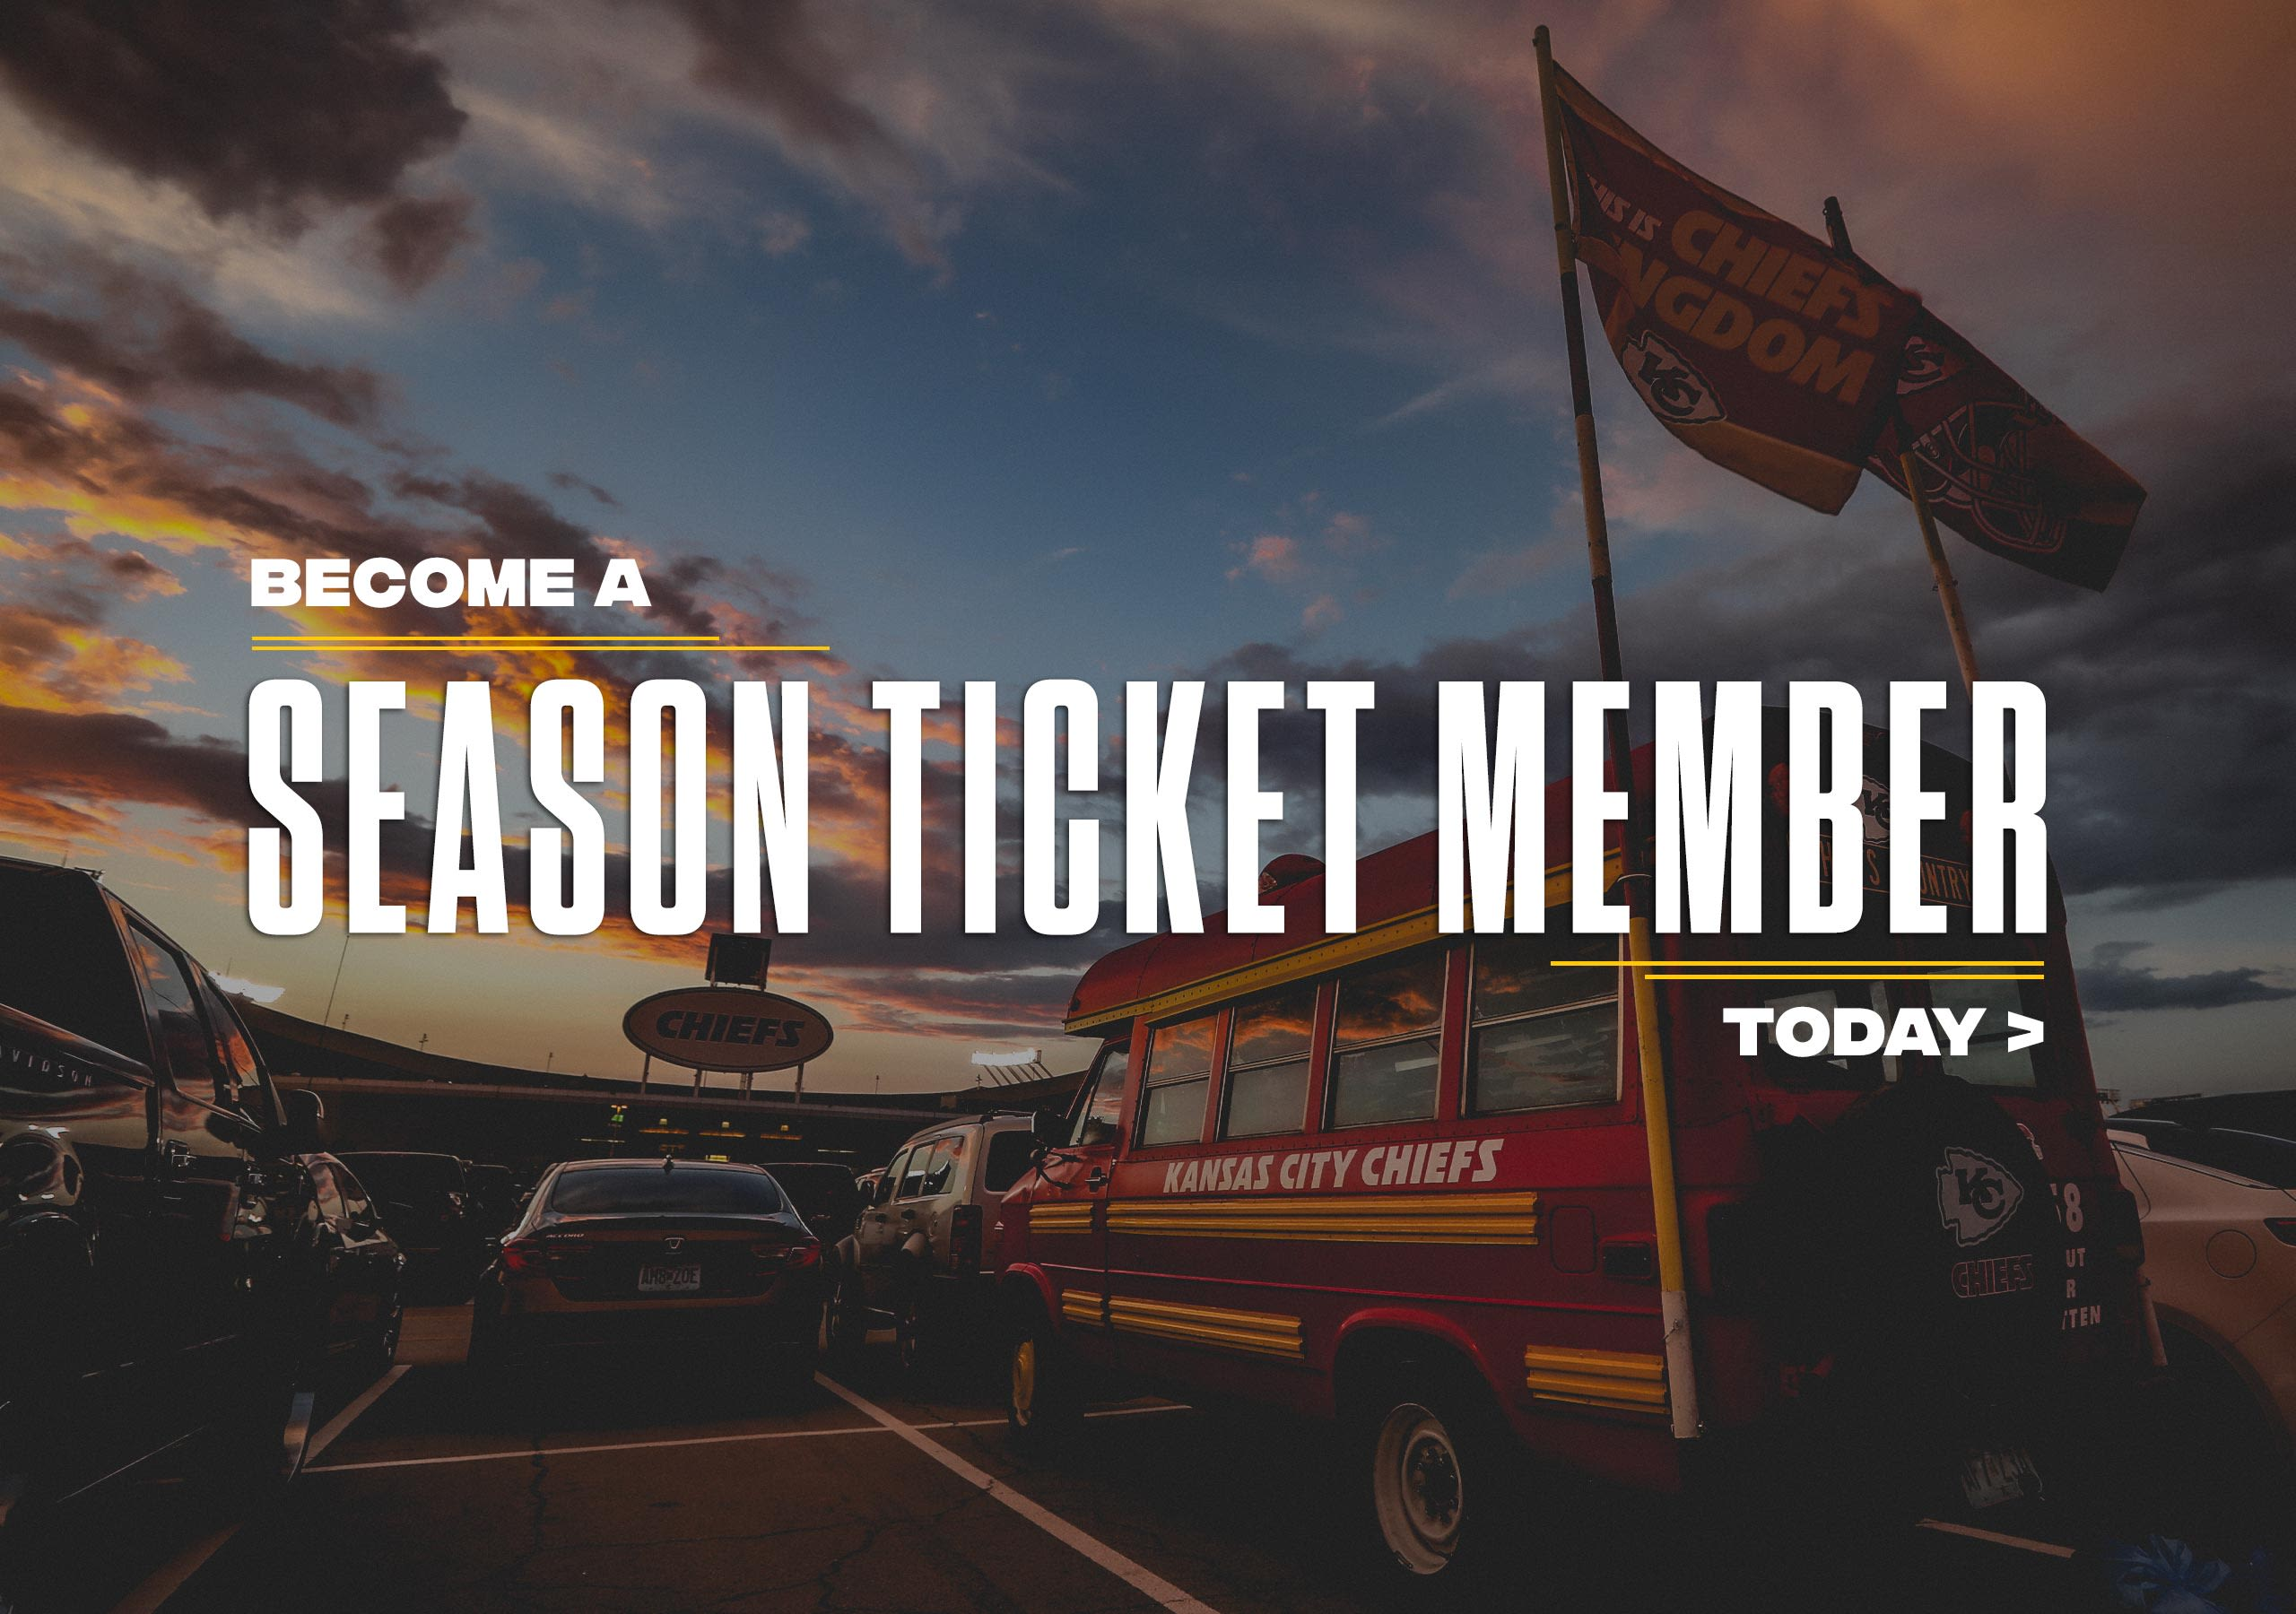 Become a Season Ticket Member today